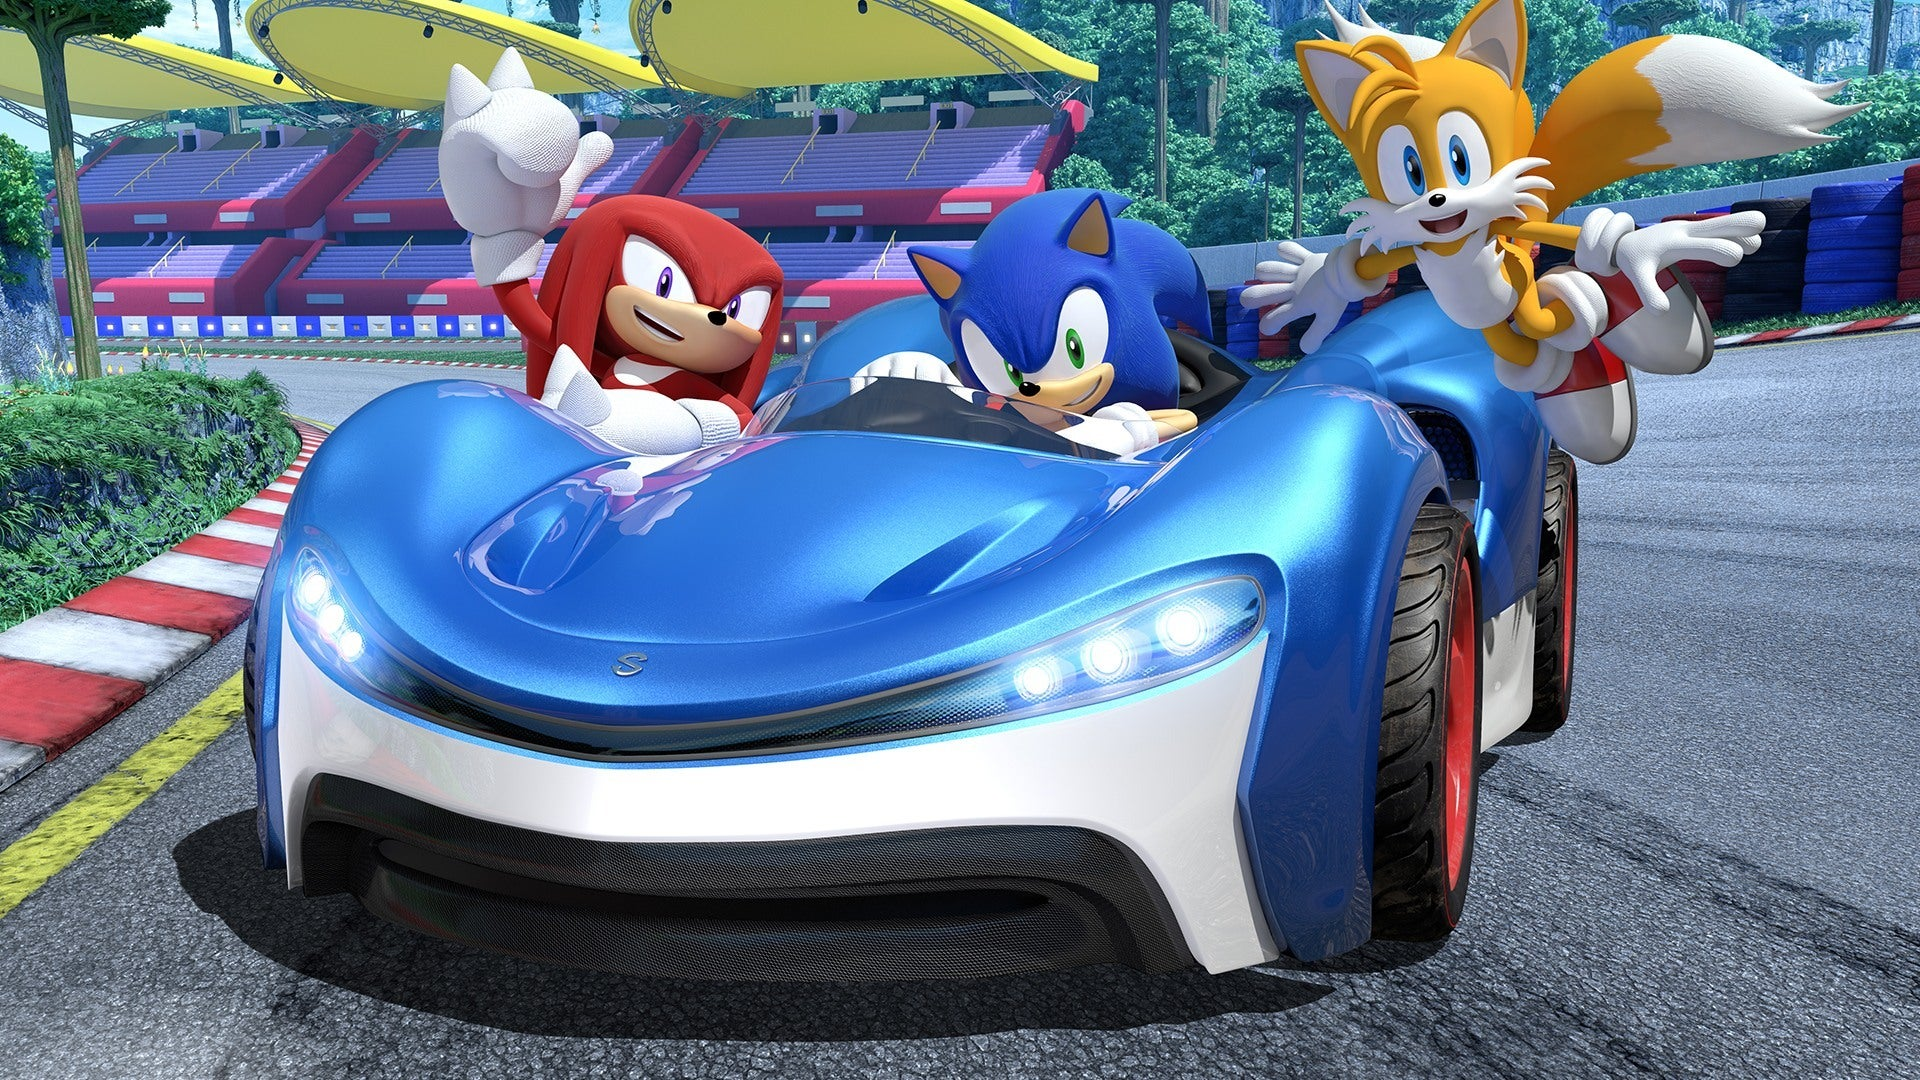 Team Sonic Racing may be getting a special edition for some reason